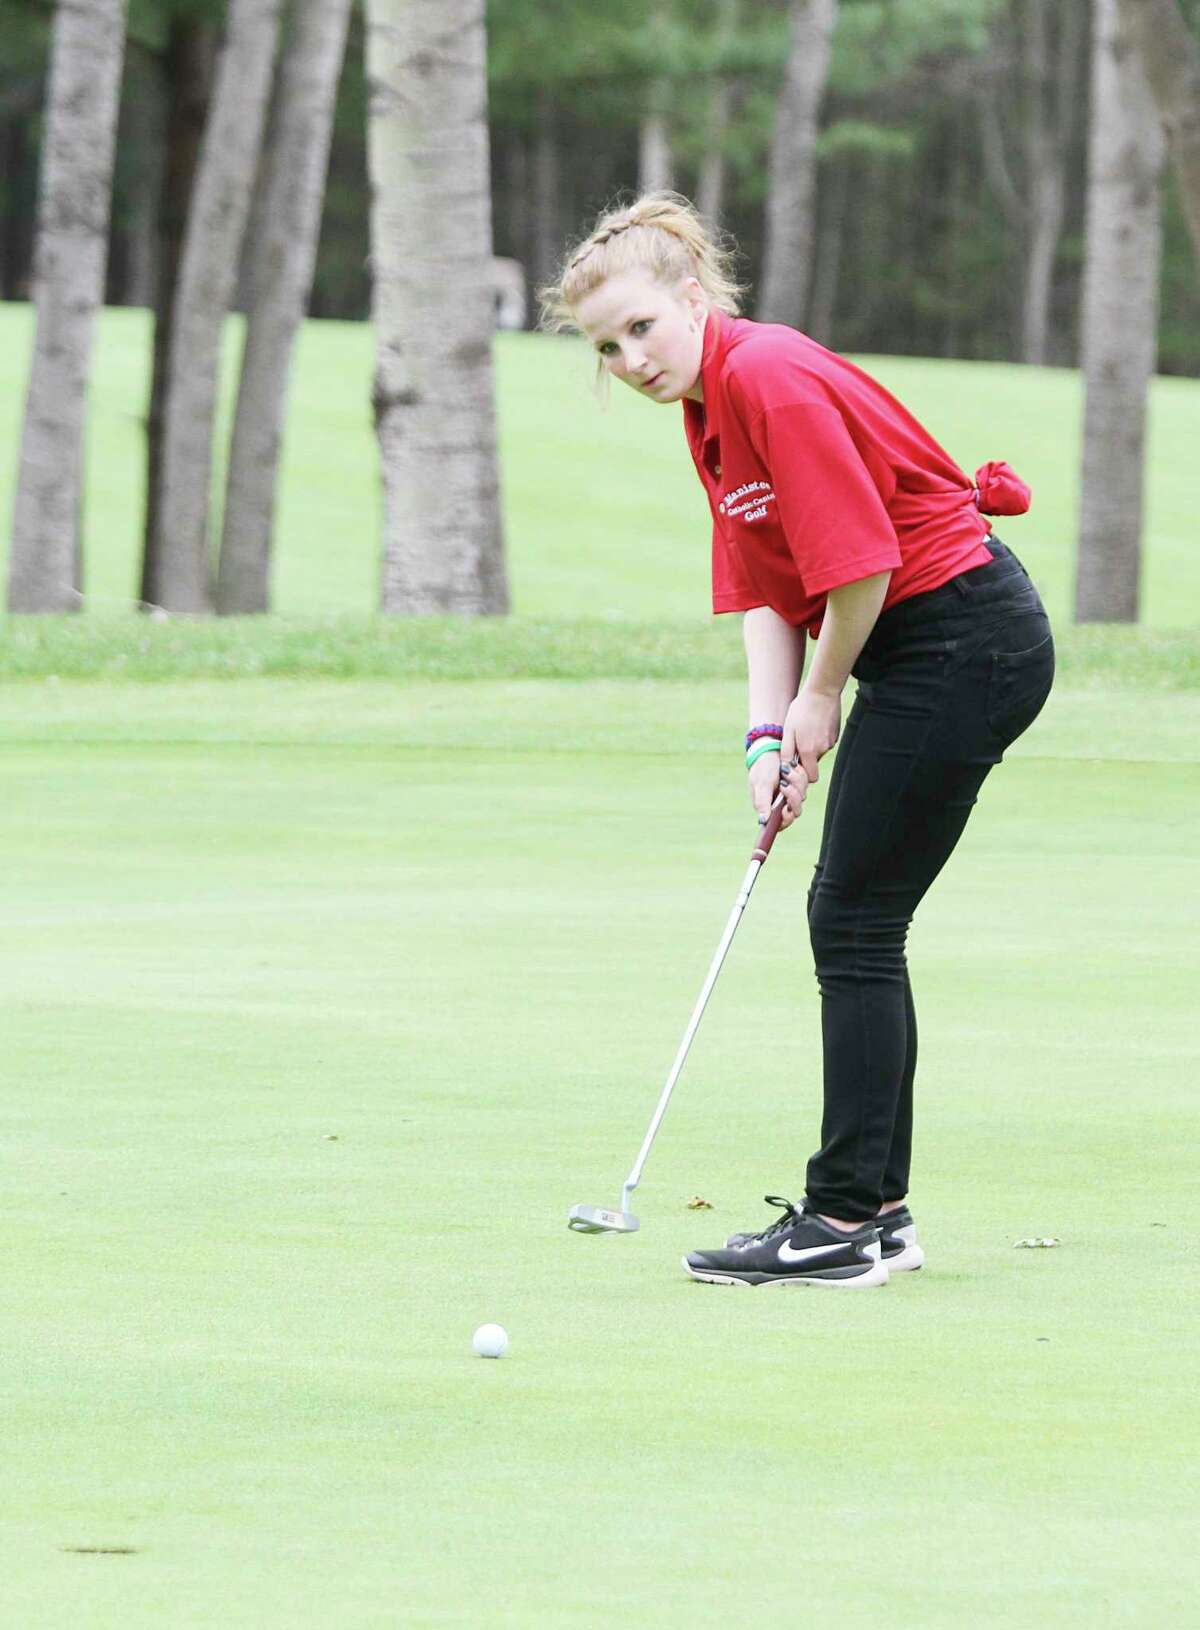 Manistee Catholic Central's Mallory Meikle was one of several Sabers looking to make strides on the golf course this spring. (News Advocate file photo)